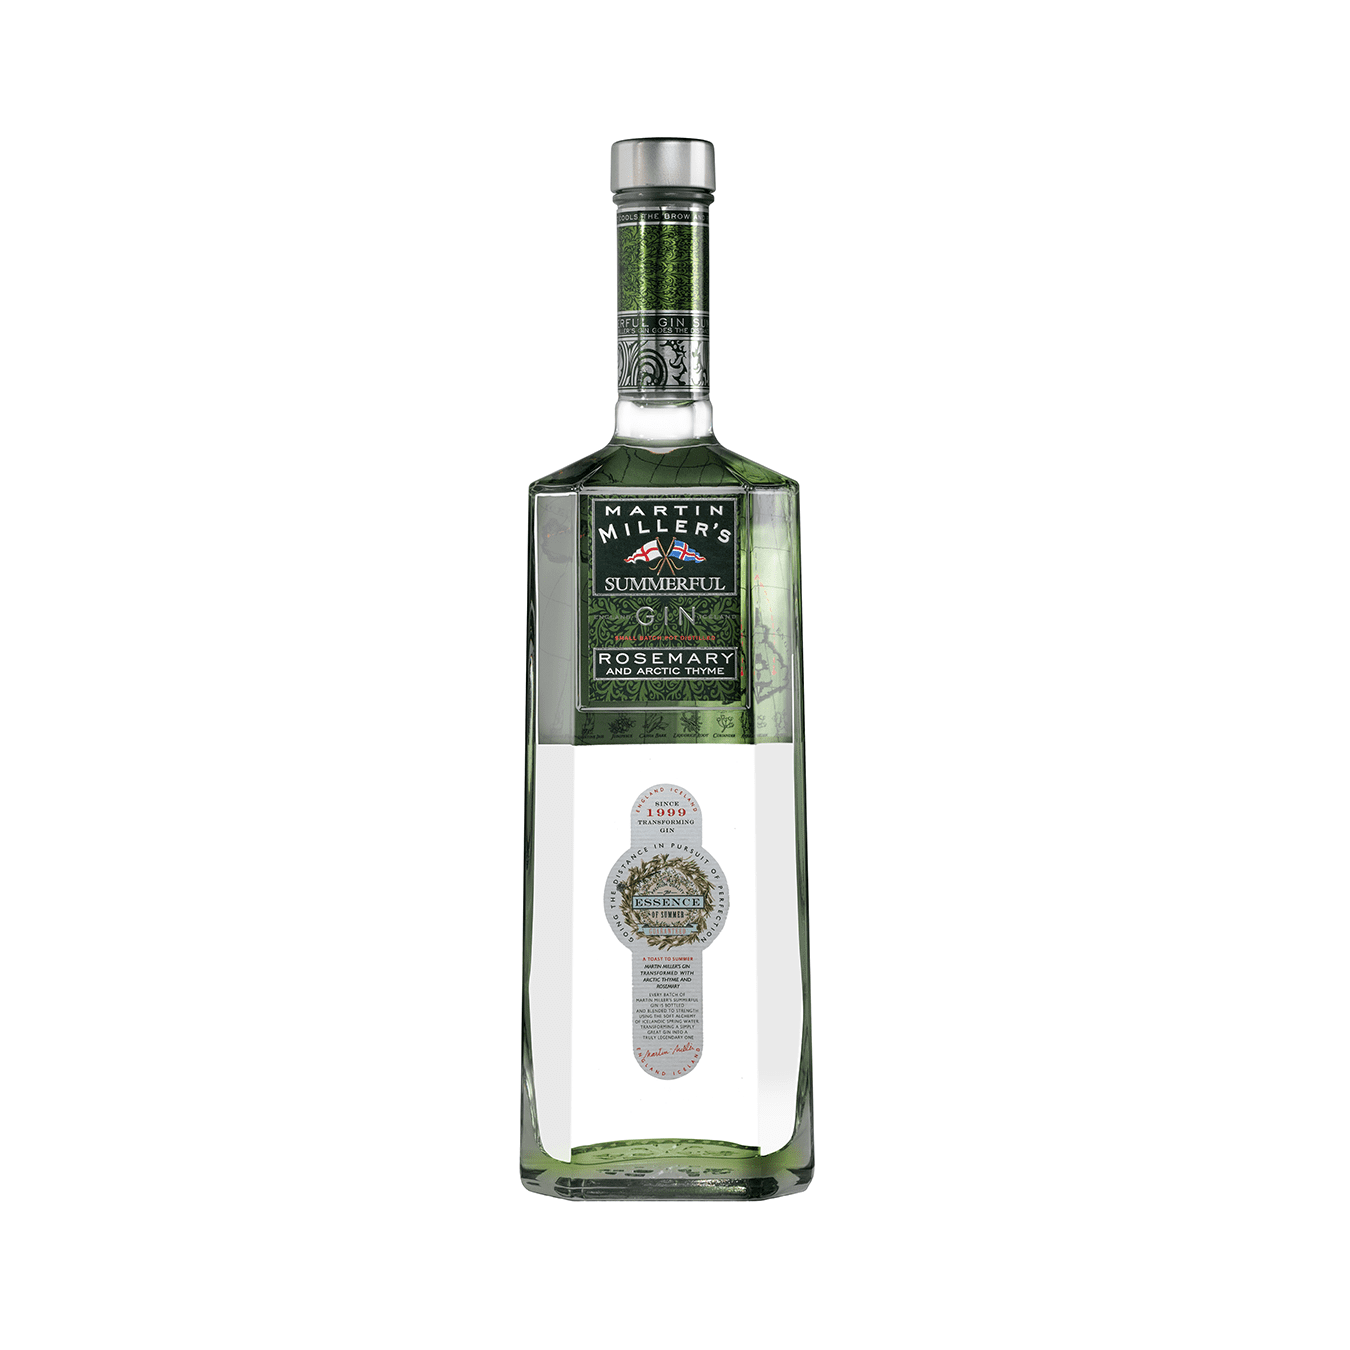 Martin Miller's Summerful Gin Bottle